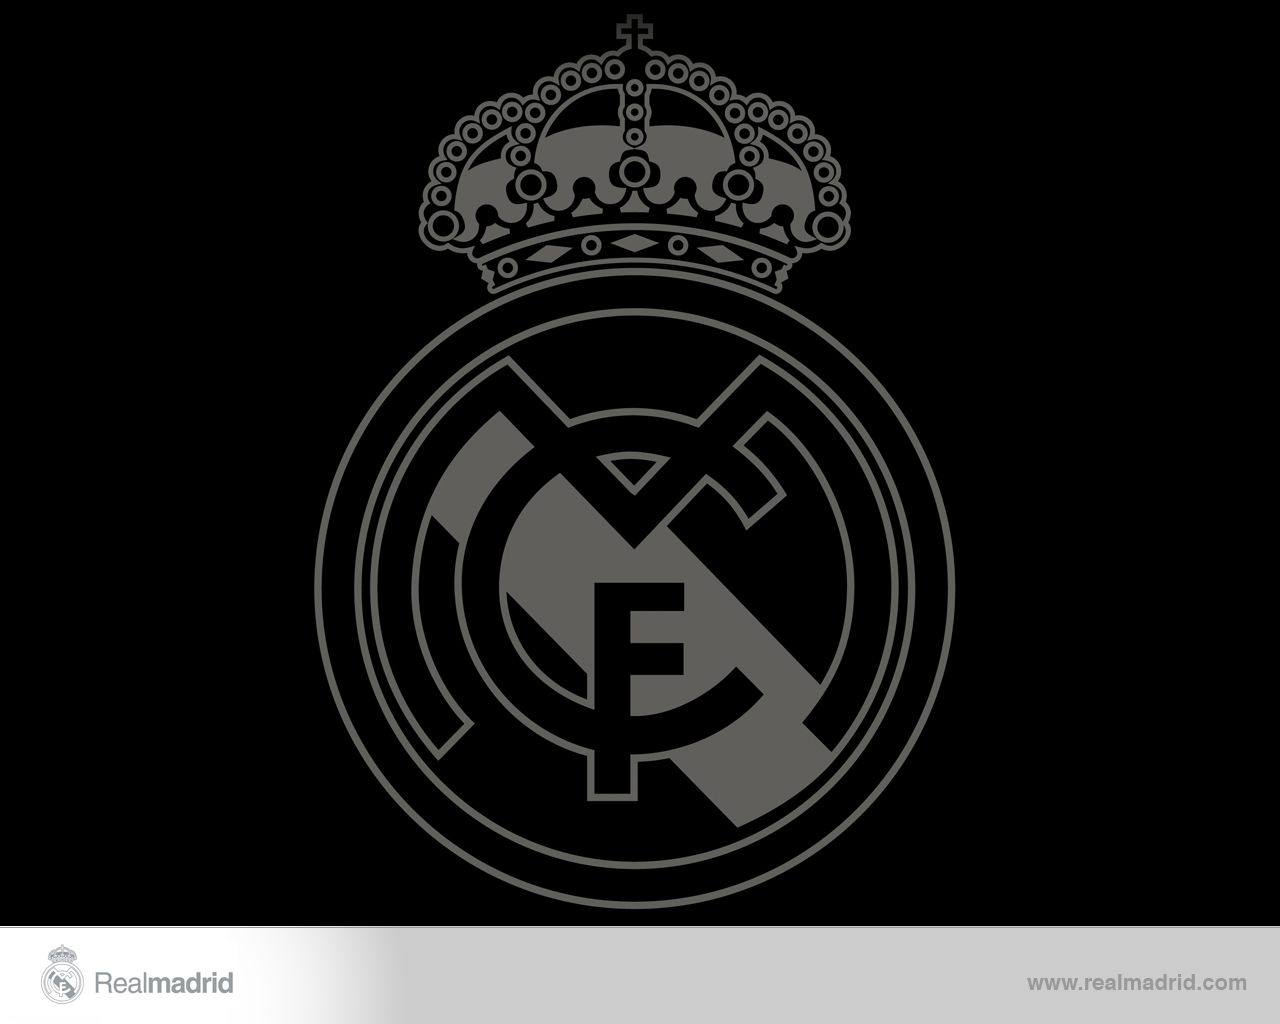 Escudo Real Madrid Real Madrid Logo Wallpapers Real Madrid Wallpapers Madrid Wallpaper